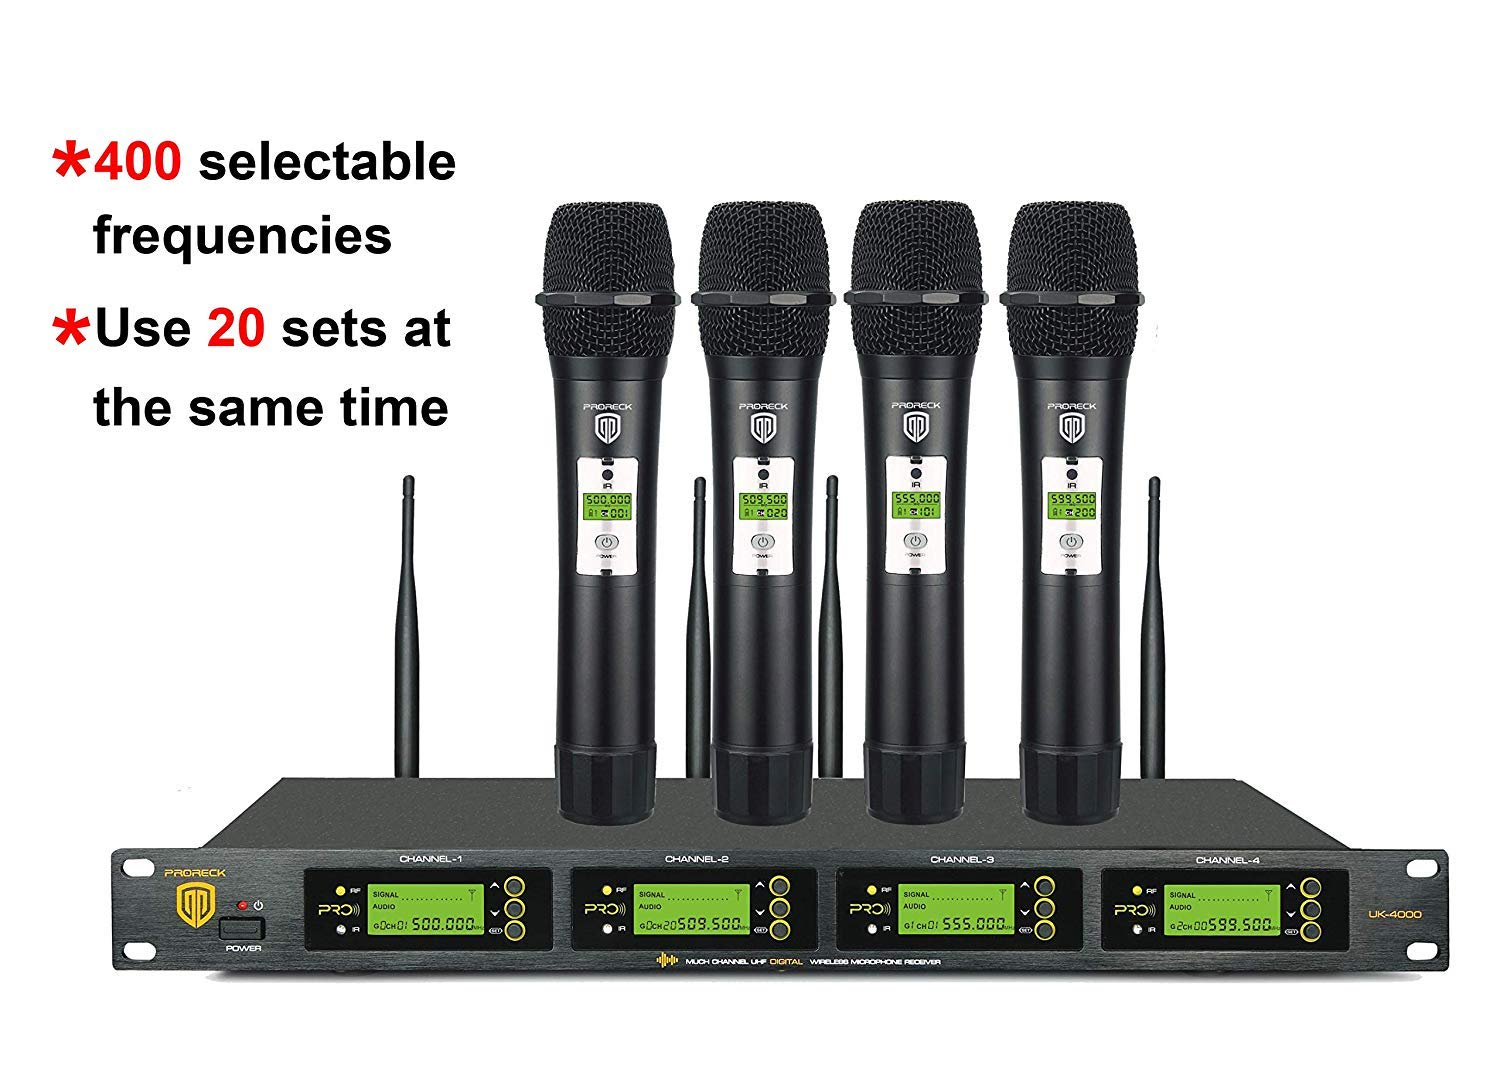 proreck uk 4000 4 channel uhf wireless microphone system with 4 hand held microphones. Black Bedroom Furniture Sets. Home Design Ideas